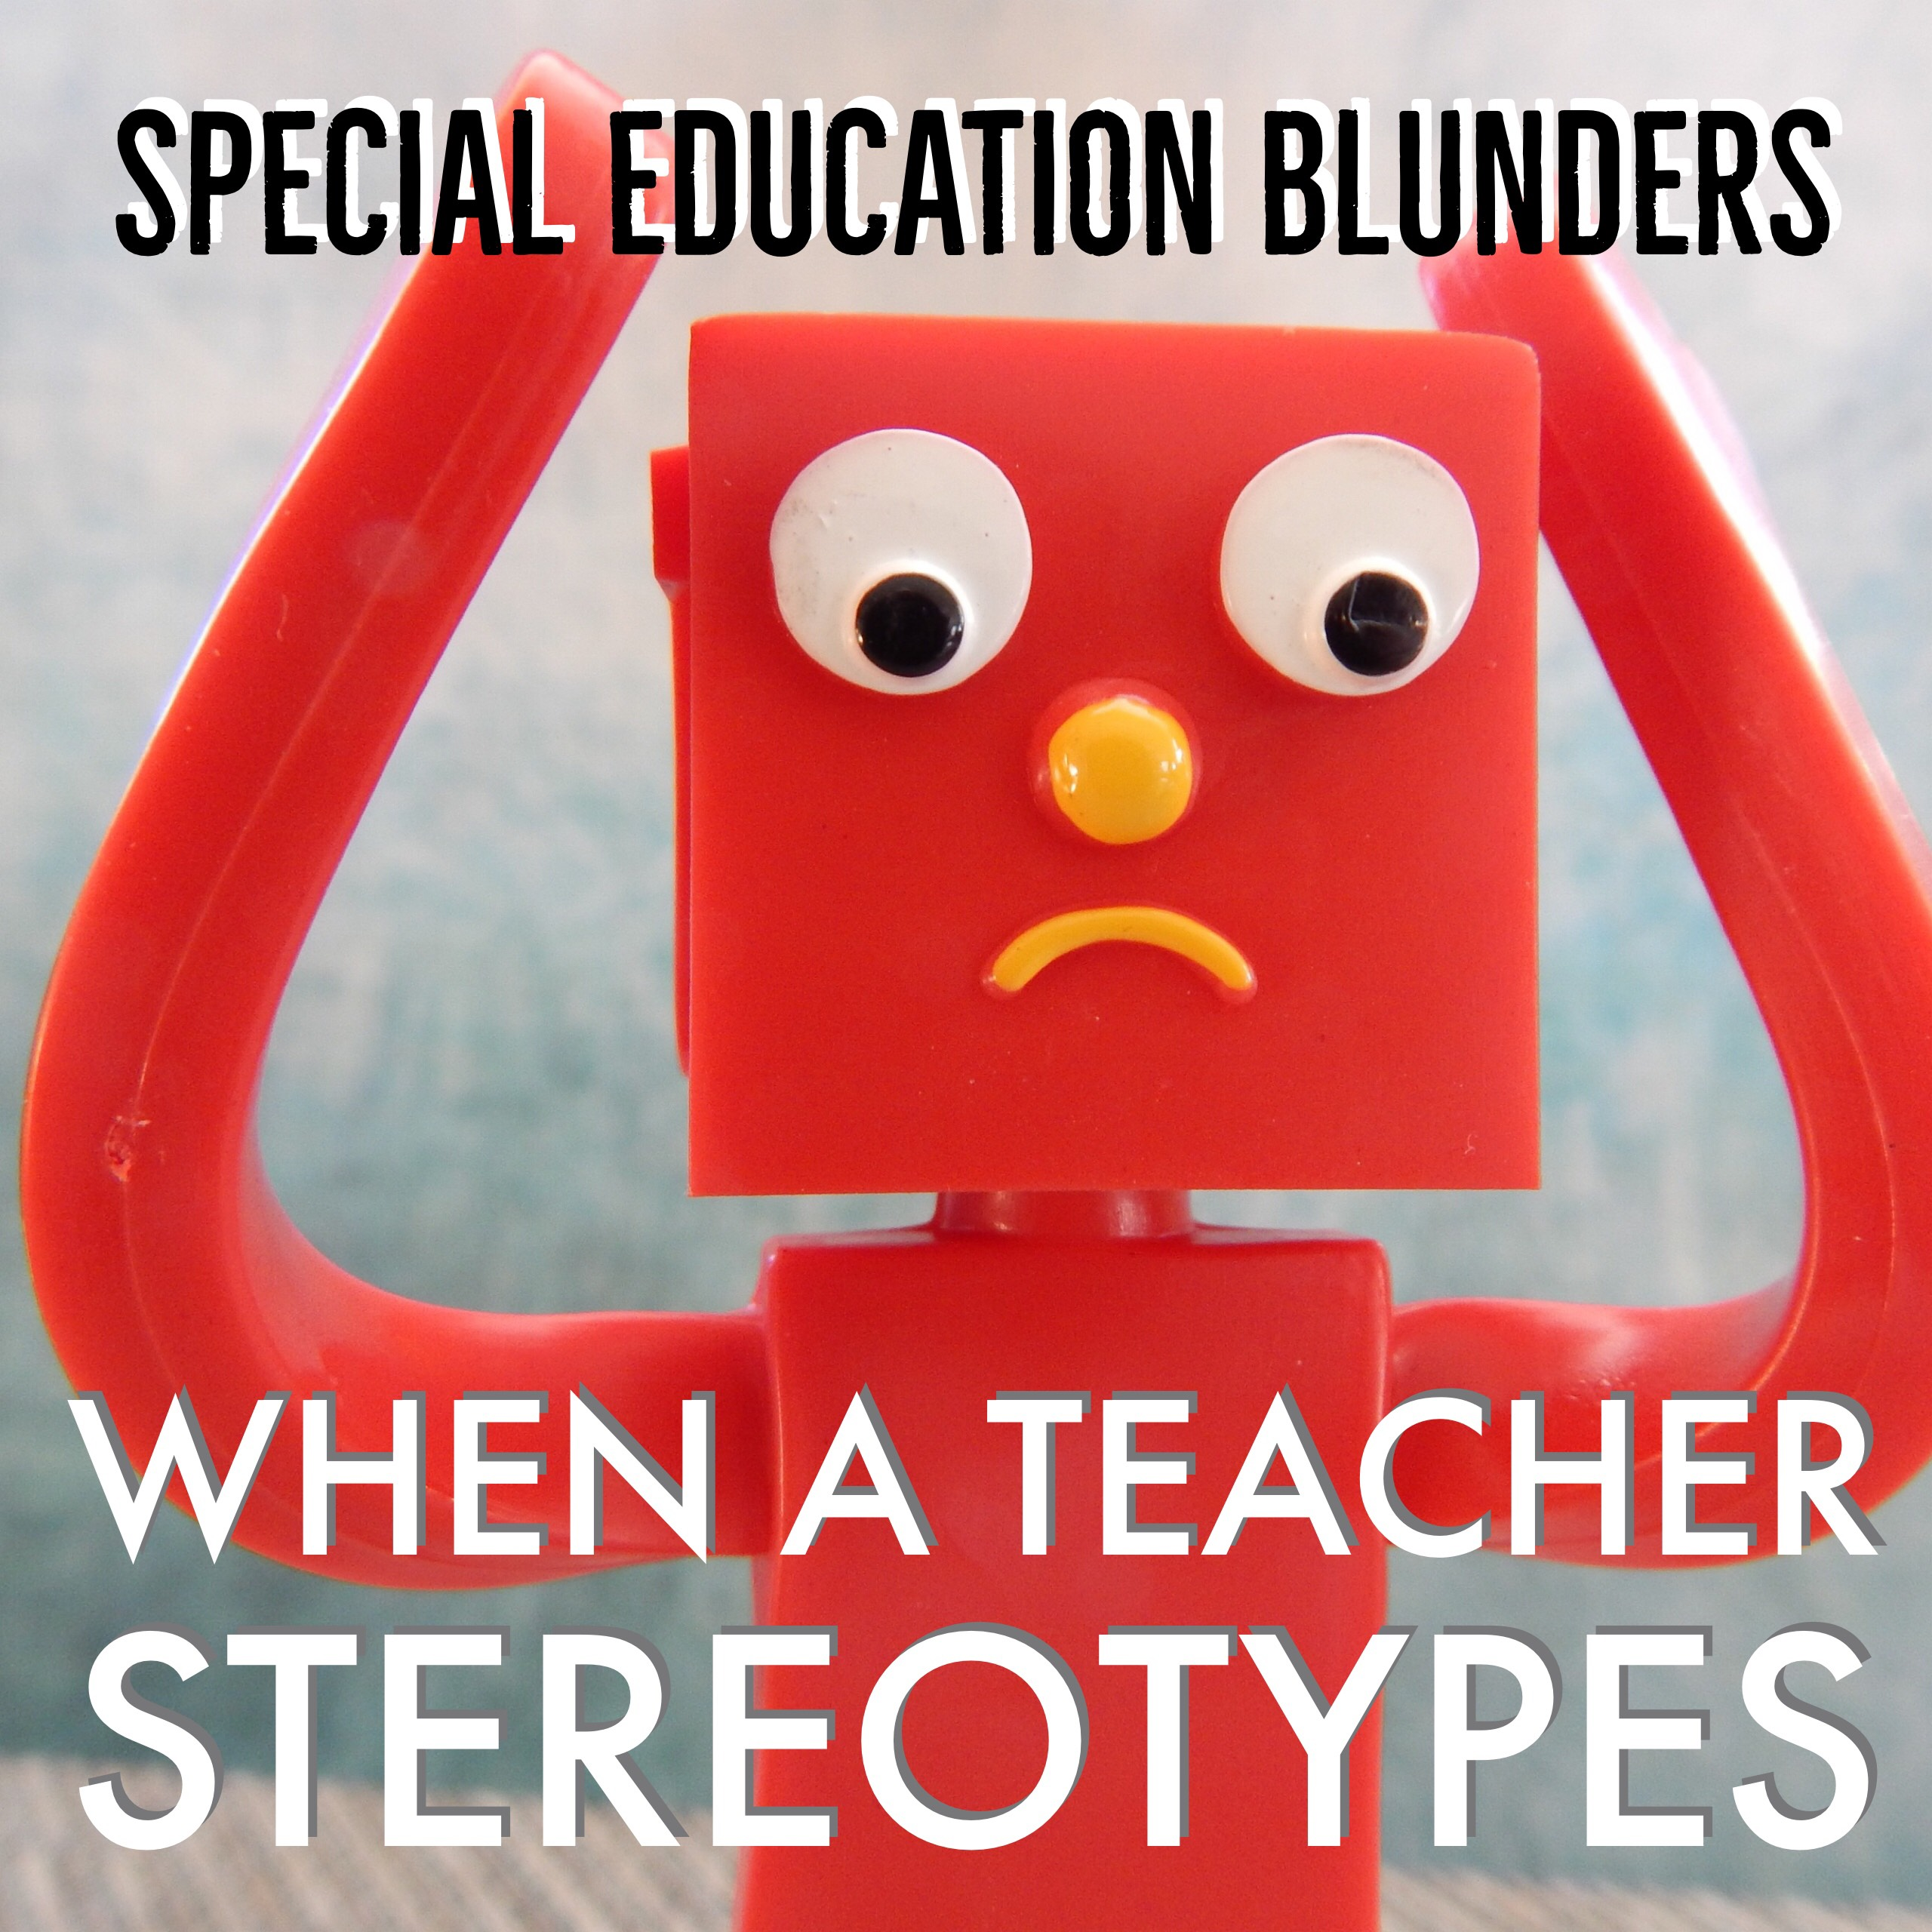 Special Education Blunders: When a Teacher Stereotypes